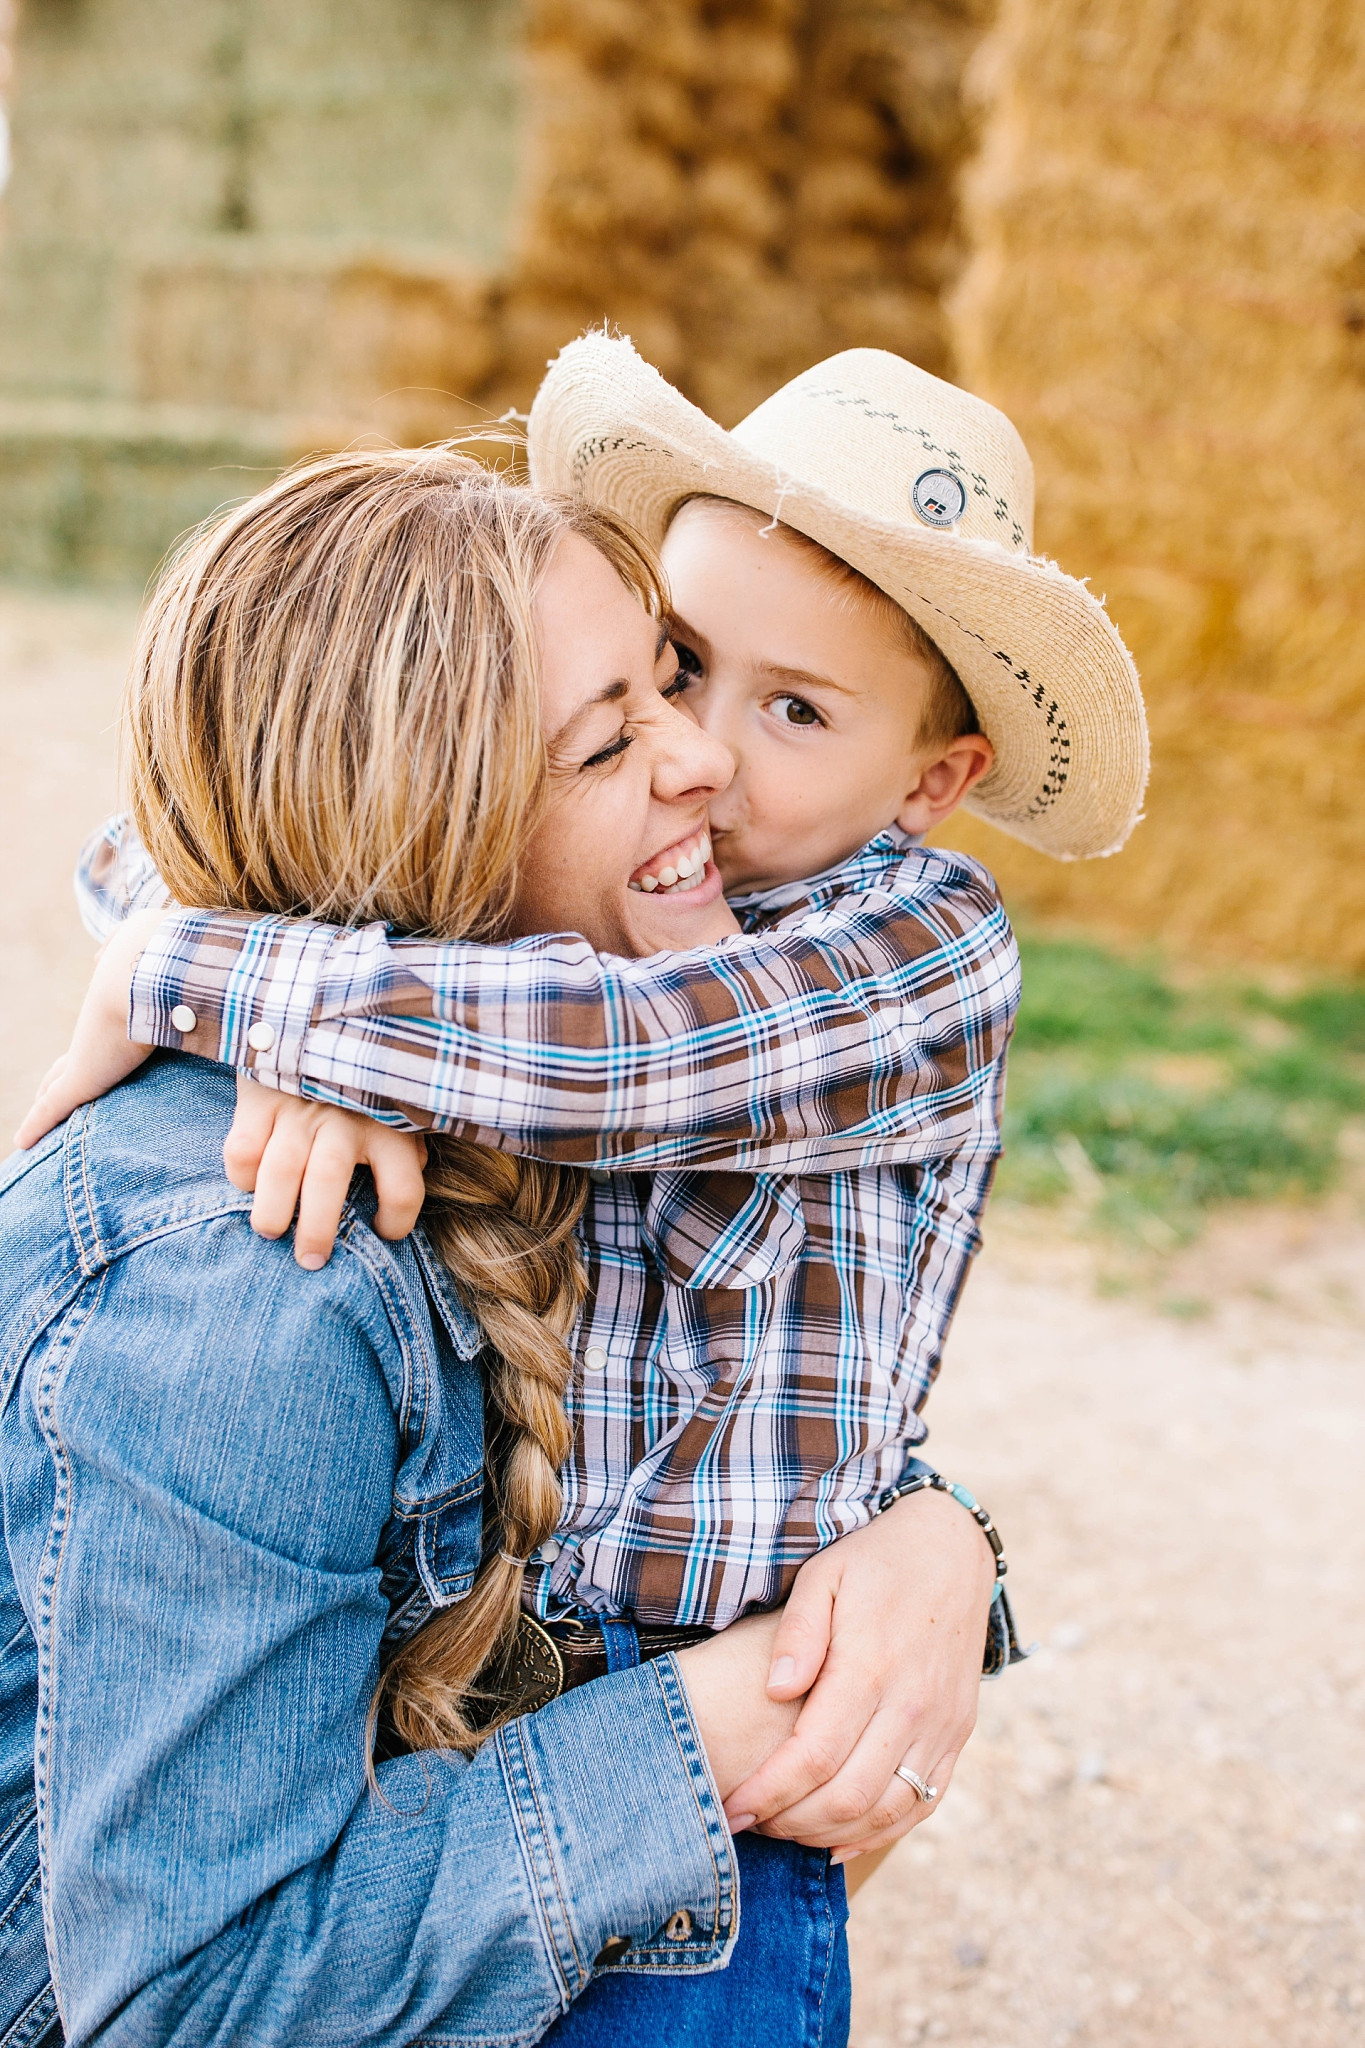 Lister-48_Lizzie-B-Imagery-Utah-Family-Photographer-Lifestyle-Photography-Salt-Lake-City-Park-City-Utah-County-Farm-Family-Session.jpg